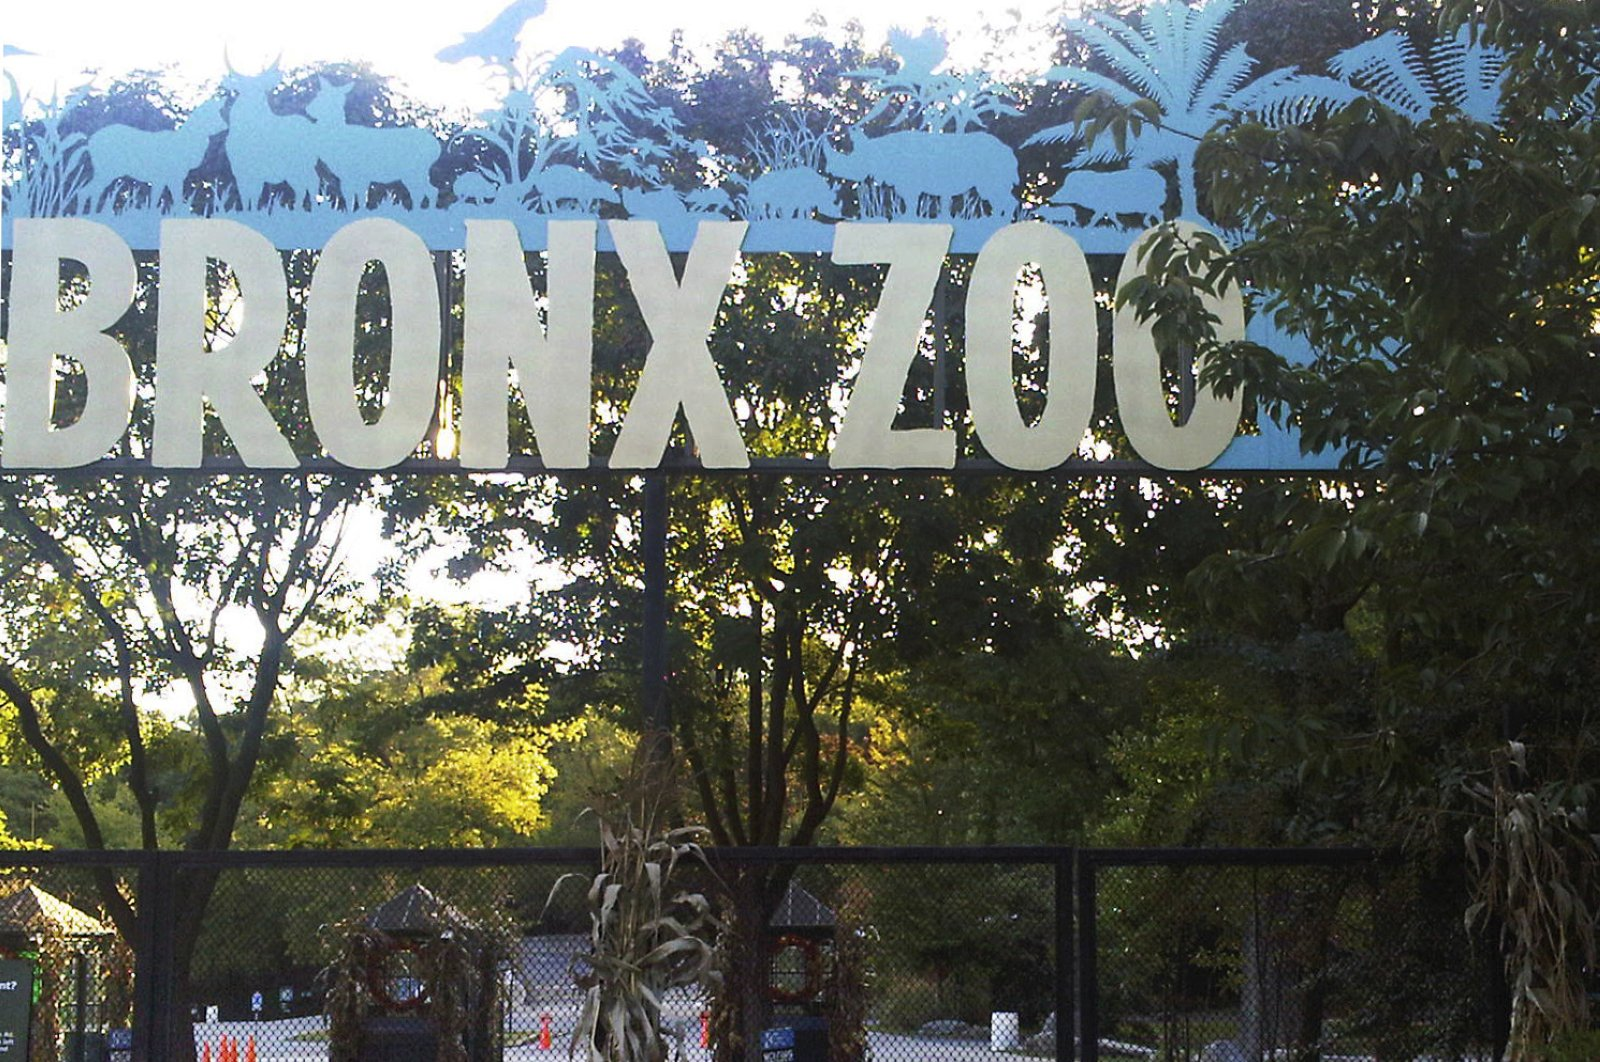 This Sept. 21, 2012, file photo shows an entrance to the Bronx Zoo in New York, U.S. A tiger at the zoo has tested positive for the new coronavirus. (AP Photo)